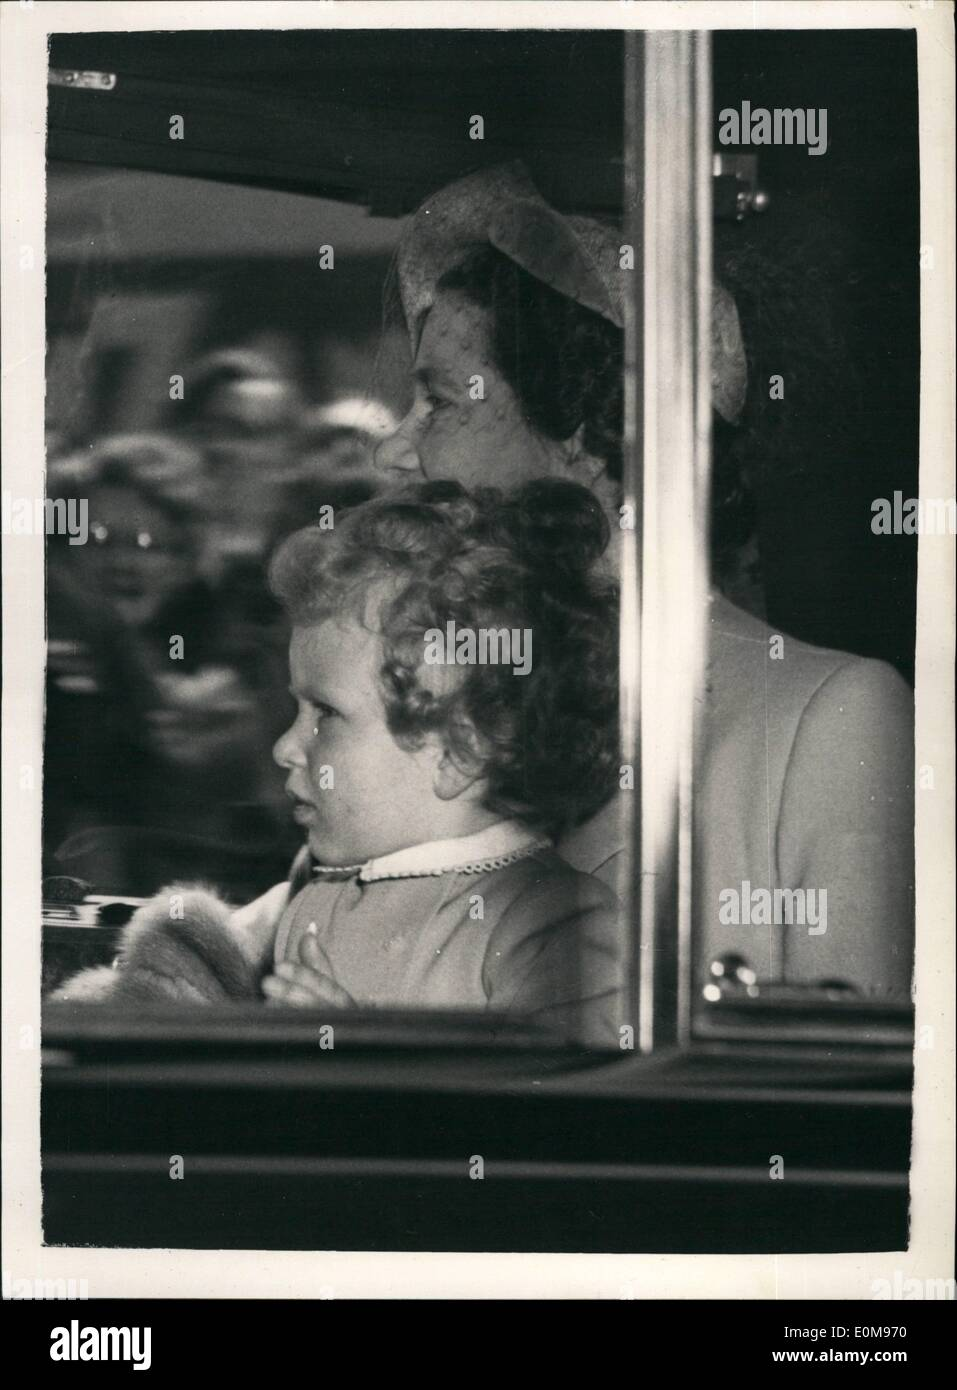 Apr. 04, 1954 - The Royal Children at Waterloo, Princess Anne with the Queen Mother; Photo Shows Princess Anne seated on the lap of the Queen Mother when she arrived at Waterloo Station this afternoon with her brother Prince Charles and Princess Margaret. They are traveling to Portsmouth where the children will board the Royal Yacht Britannia for Tobruk to meet their parents the Queen and the Duke of Edinburg. - Stock Image